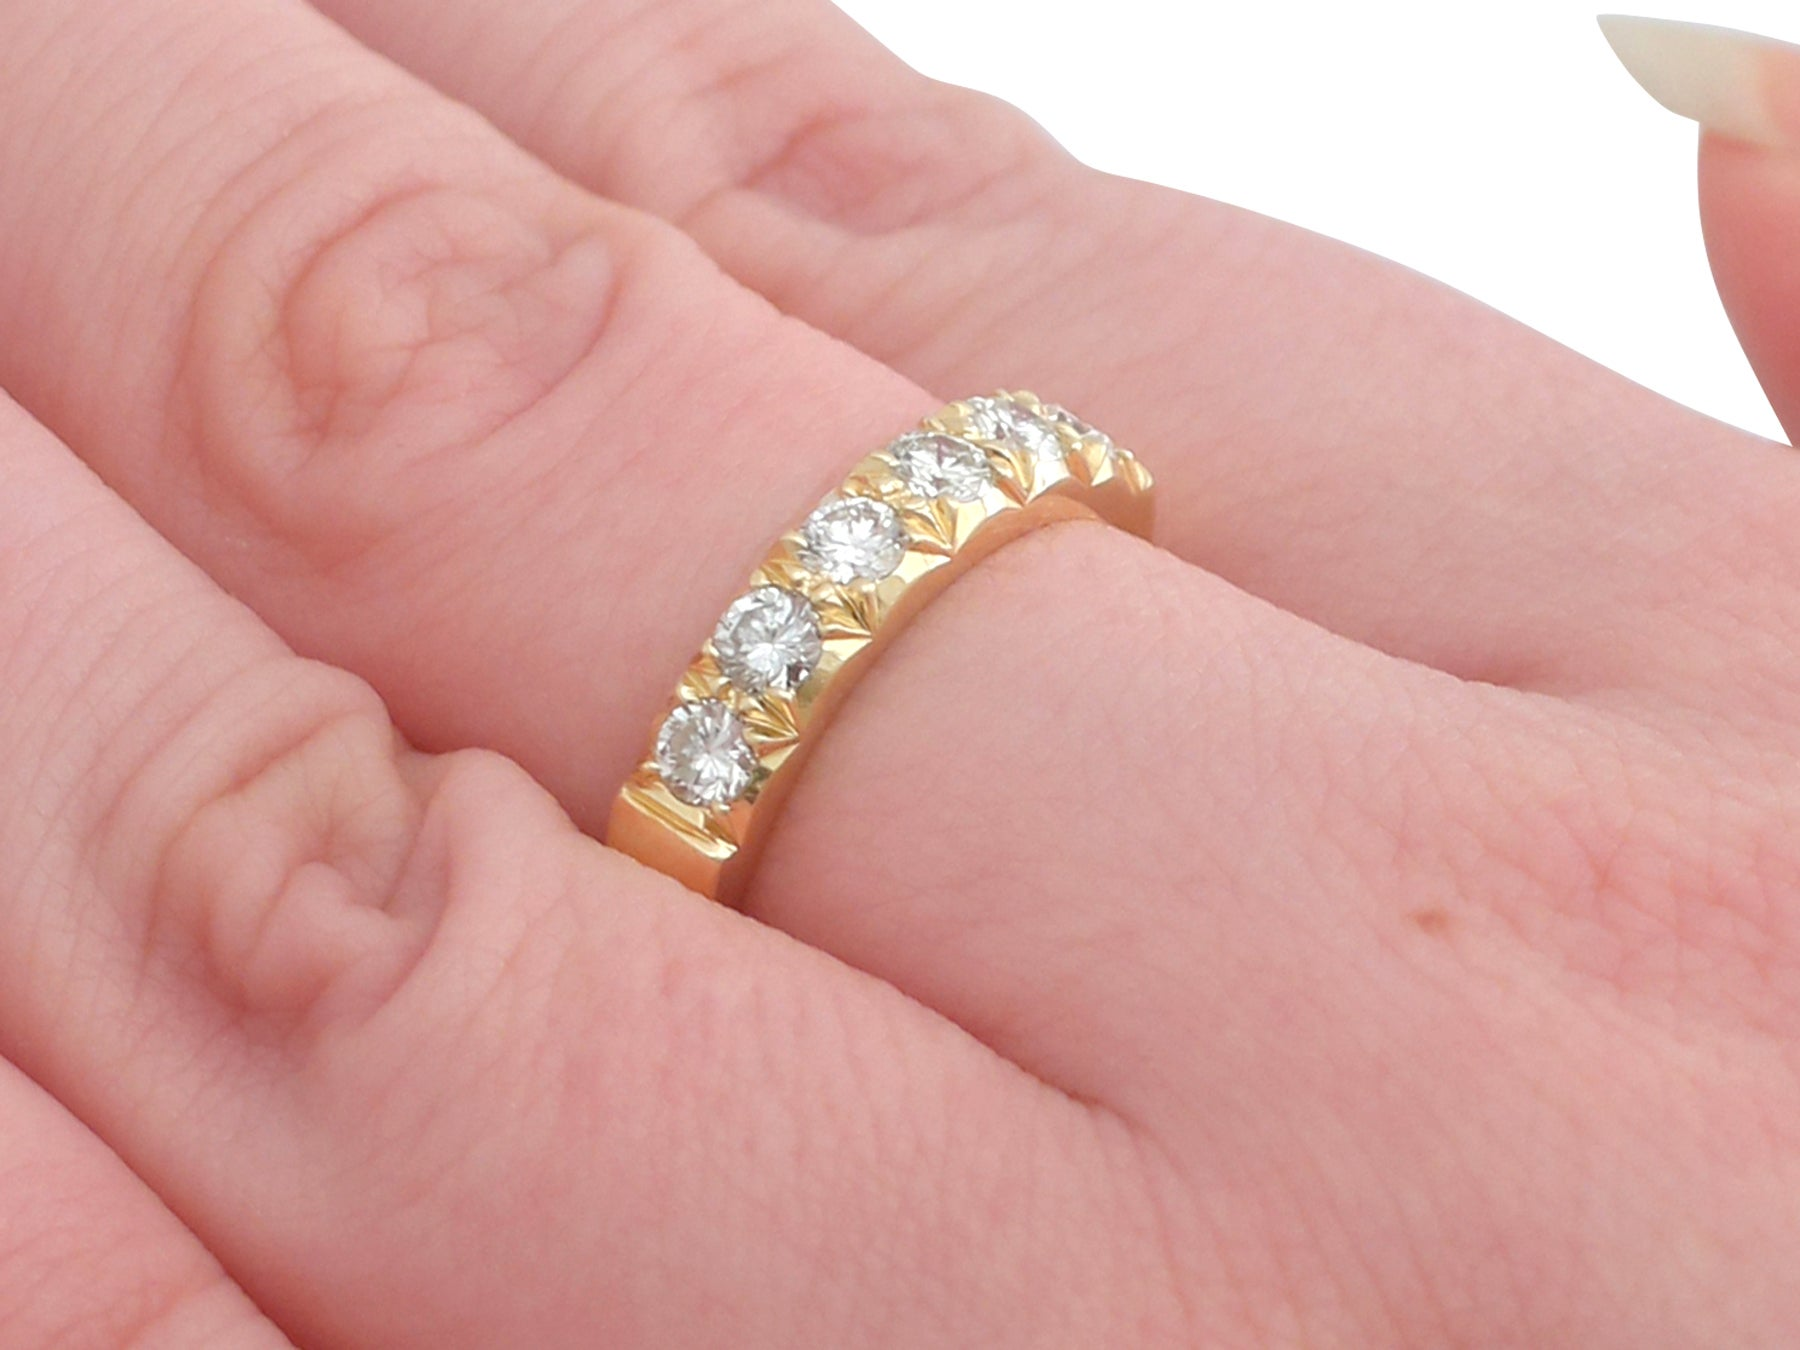 1970s Diamond Yellow Gold Half Eternity Ring For Sale at 1stdibs